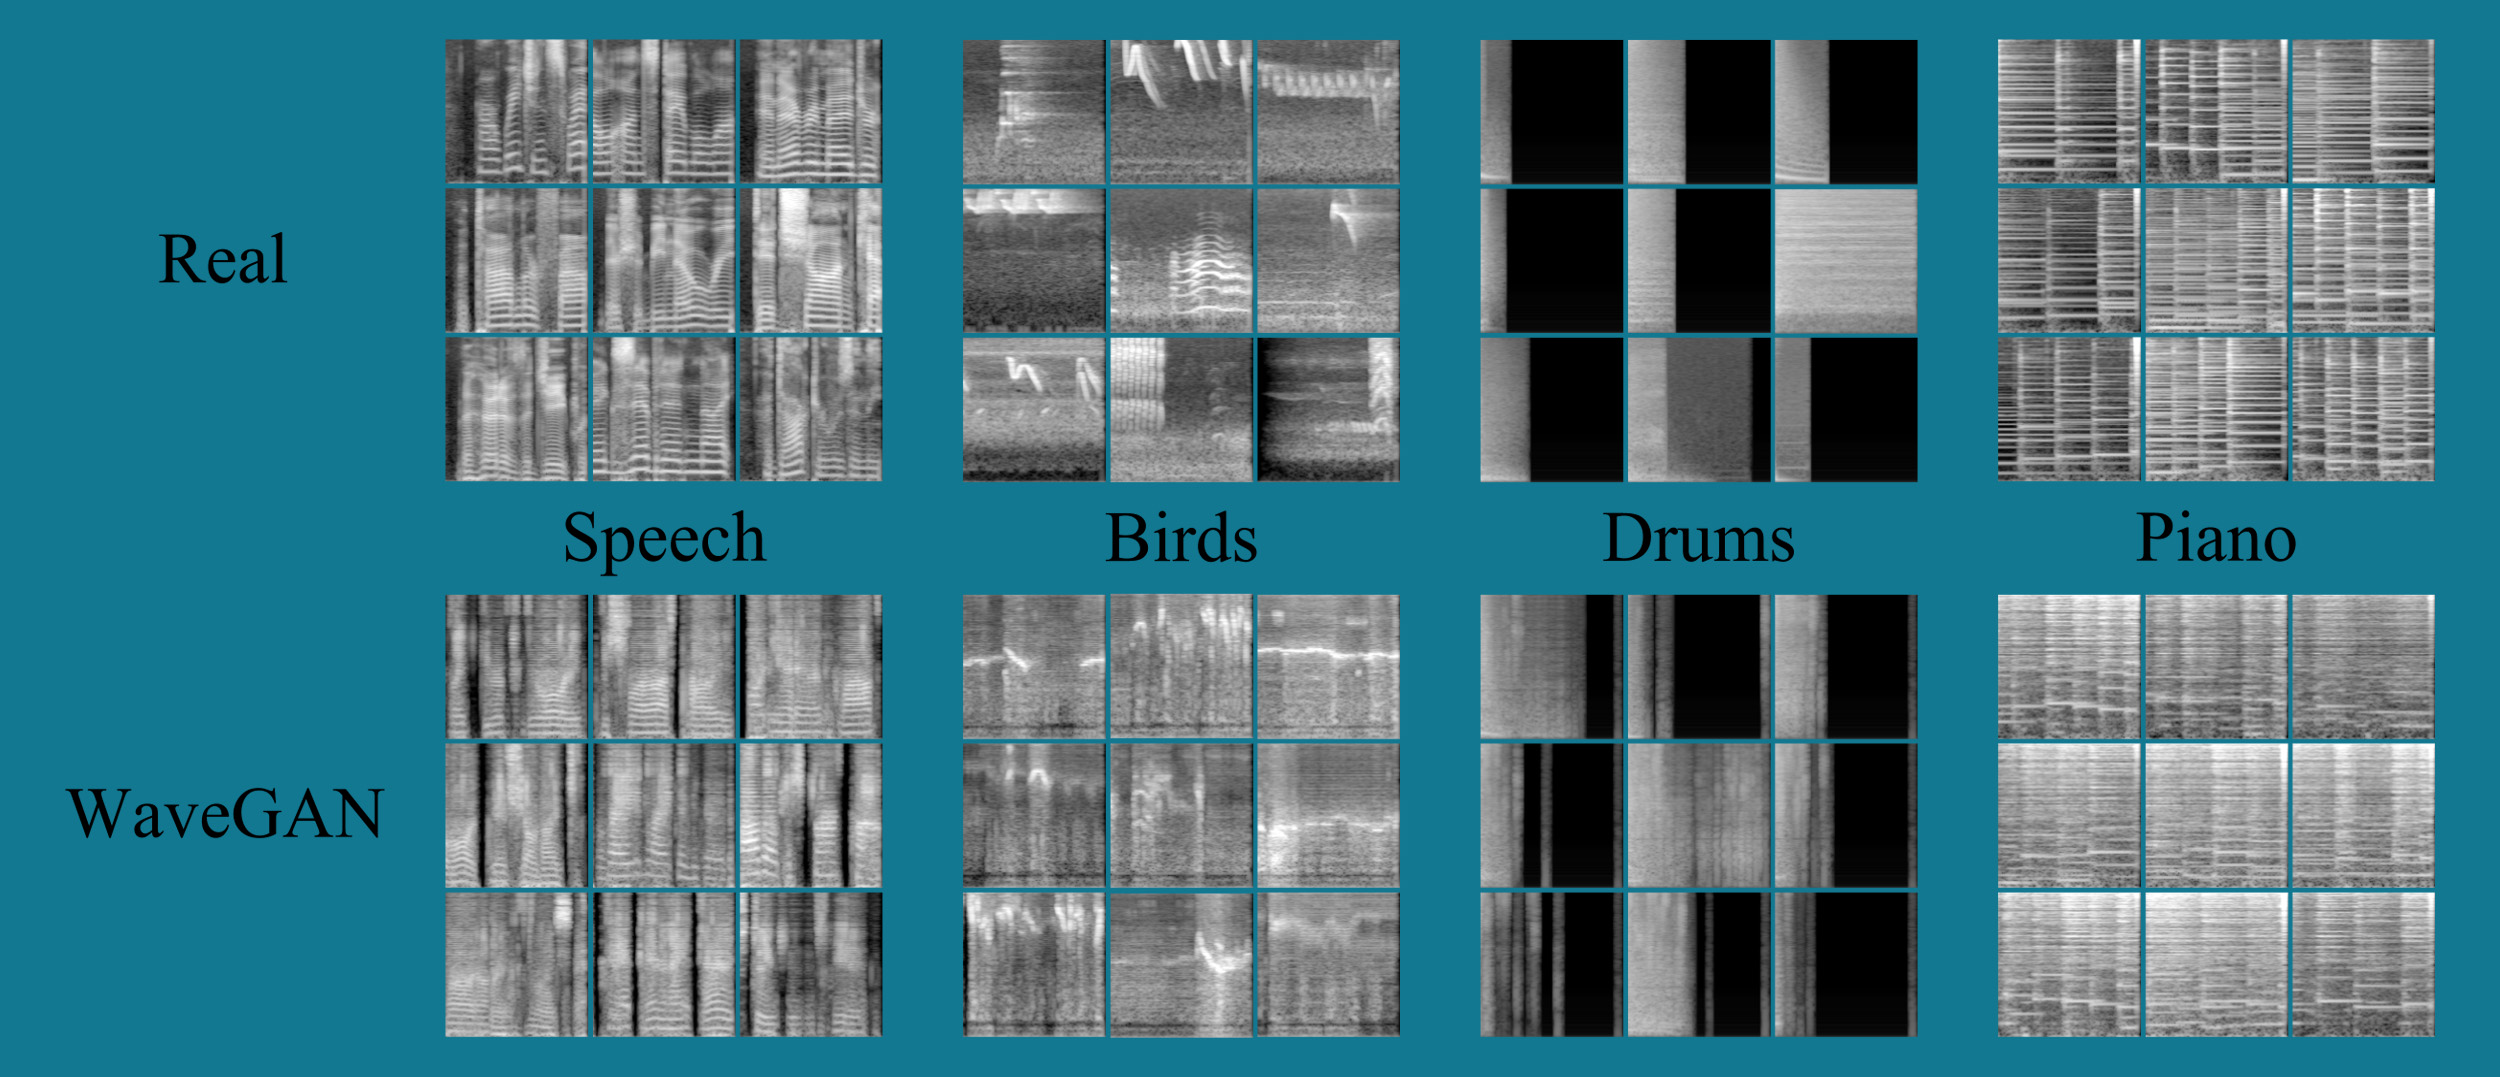 Time-frequency spectrograms generated by Tacotron-like networks.